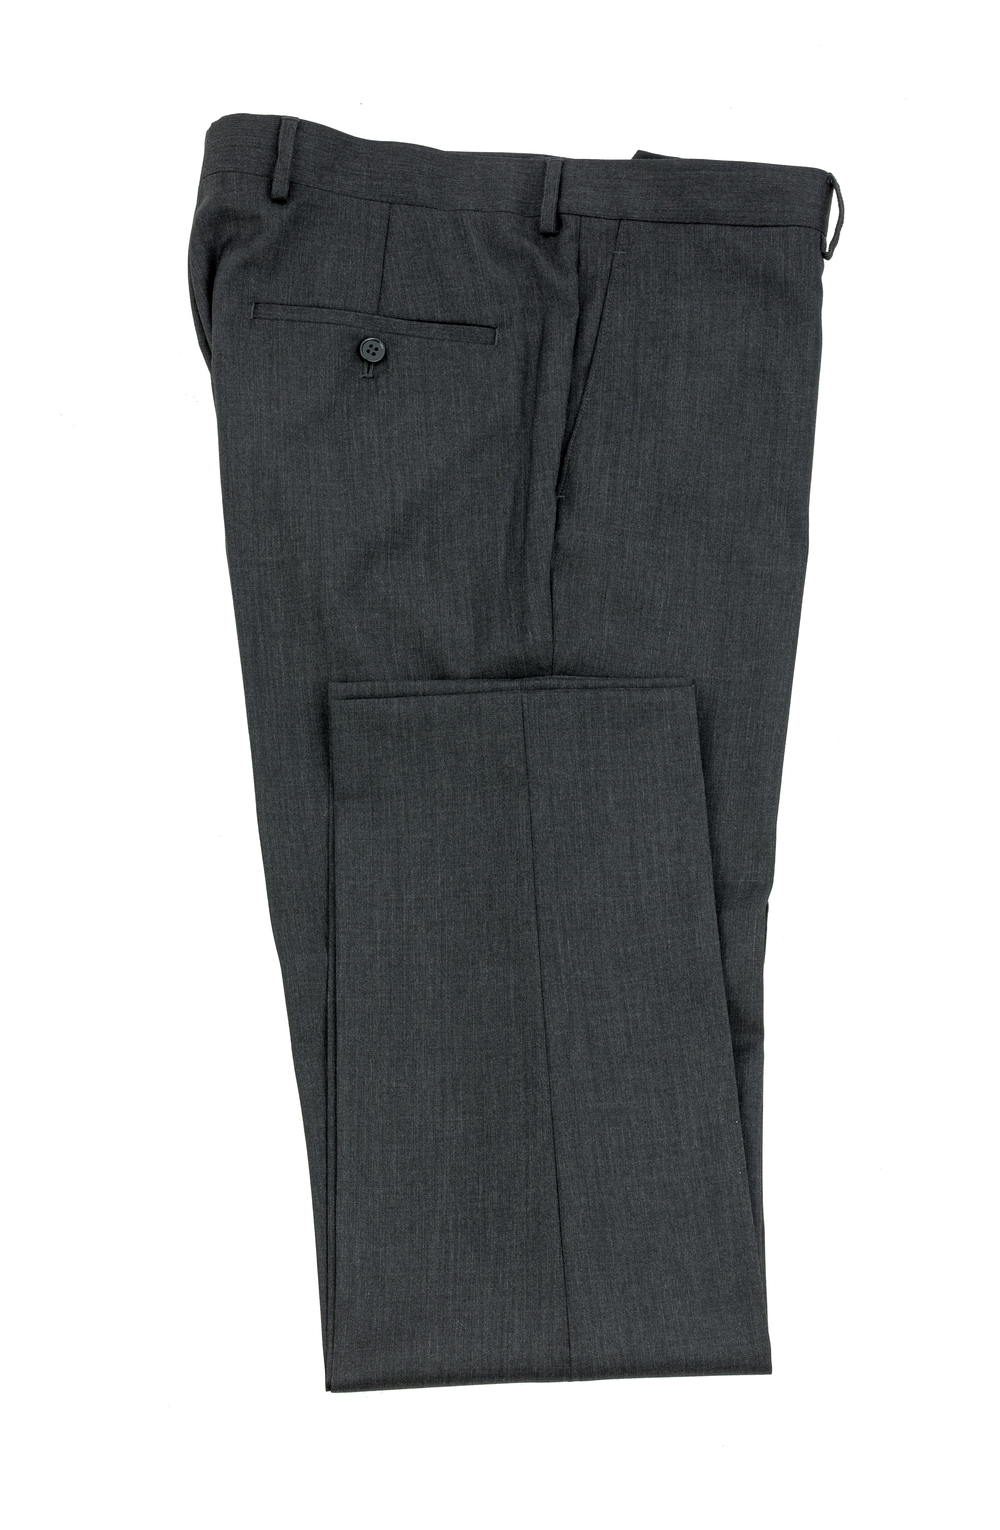 Studio Italia Icon Charcoal Trouser